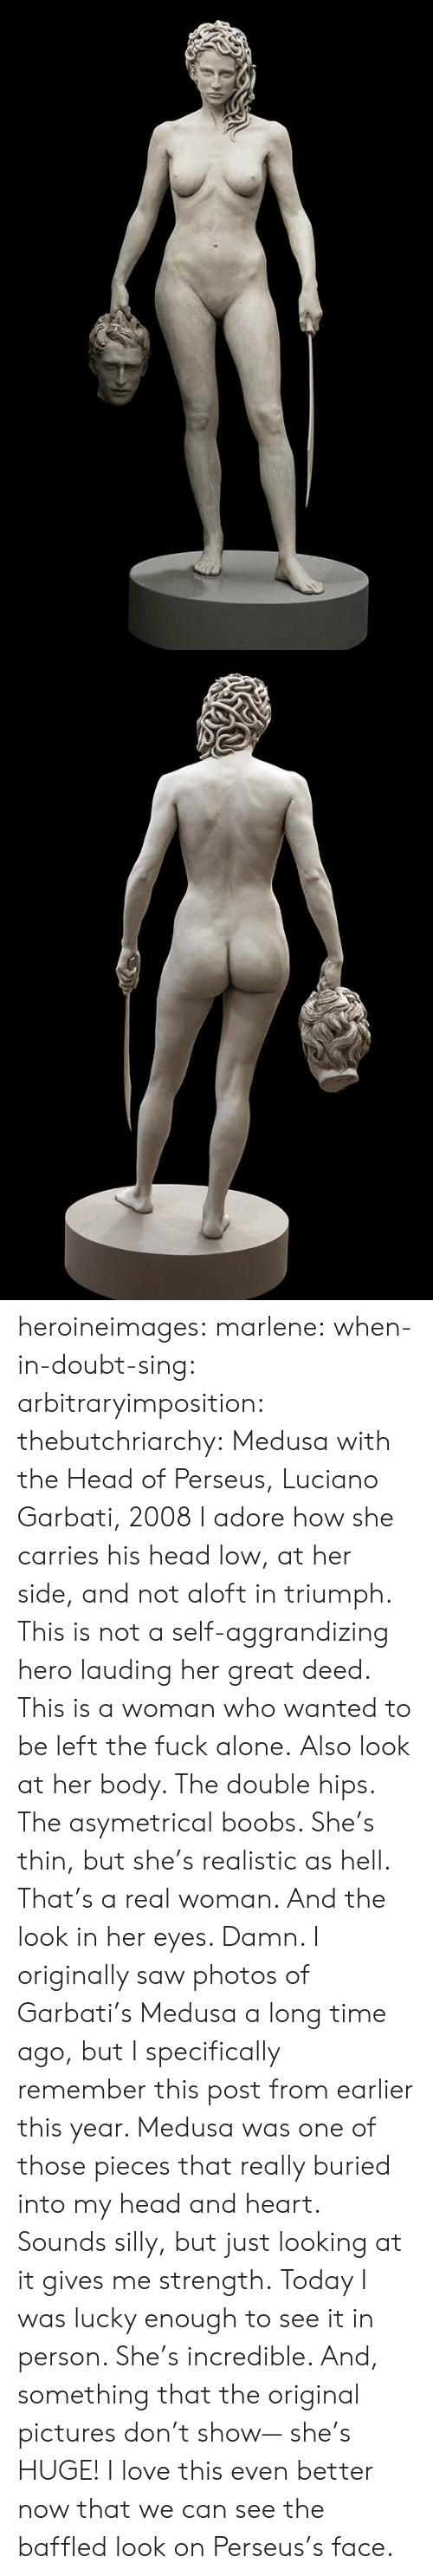 Long Time Ago: heroineimages:  marlene:  when-in-doubt-sing:  arbitraryimposition:  thebutchriarchy: Medusa with the Head of Perseus, Luciano Garbati, 2008 I adore how she carries his head low, at her side, and not aloft in triumph.  This is not a self-aggrandizing hero lauding her great deed. This is a woman who wanted to be left the fuck alone.   Also look at her body. The double hips. The asymetrical boobs. She's thin, but she's realistic as hell. That's a real woman.  And the look in her eyes. Damn.   I originally saw photos of Garbati's Medusa a long time ago, but I specifically remember this post from earlier this year. Medusa was one of those pieces that really buried into my head and heart. Sounds silly, but just looking at it gives me strength. Today I was lucky enough to see it in person. She's incredible. And, something that the original pictures don't show— she's HUGE!    I love this even better now that we can see the baffled look on Perseus's face.